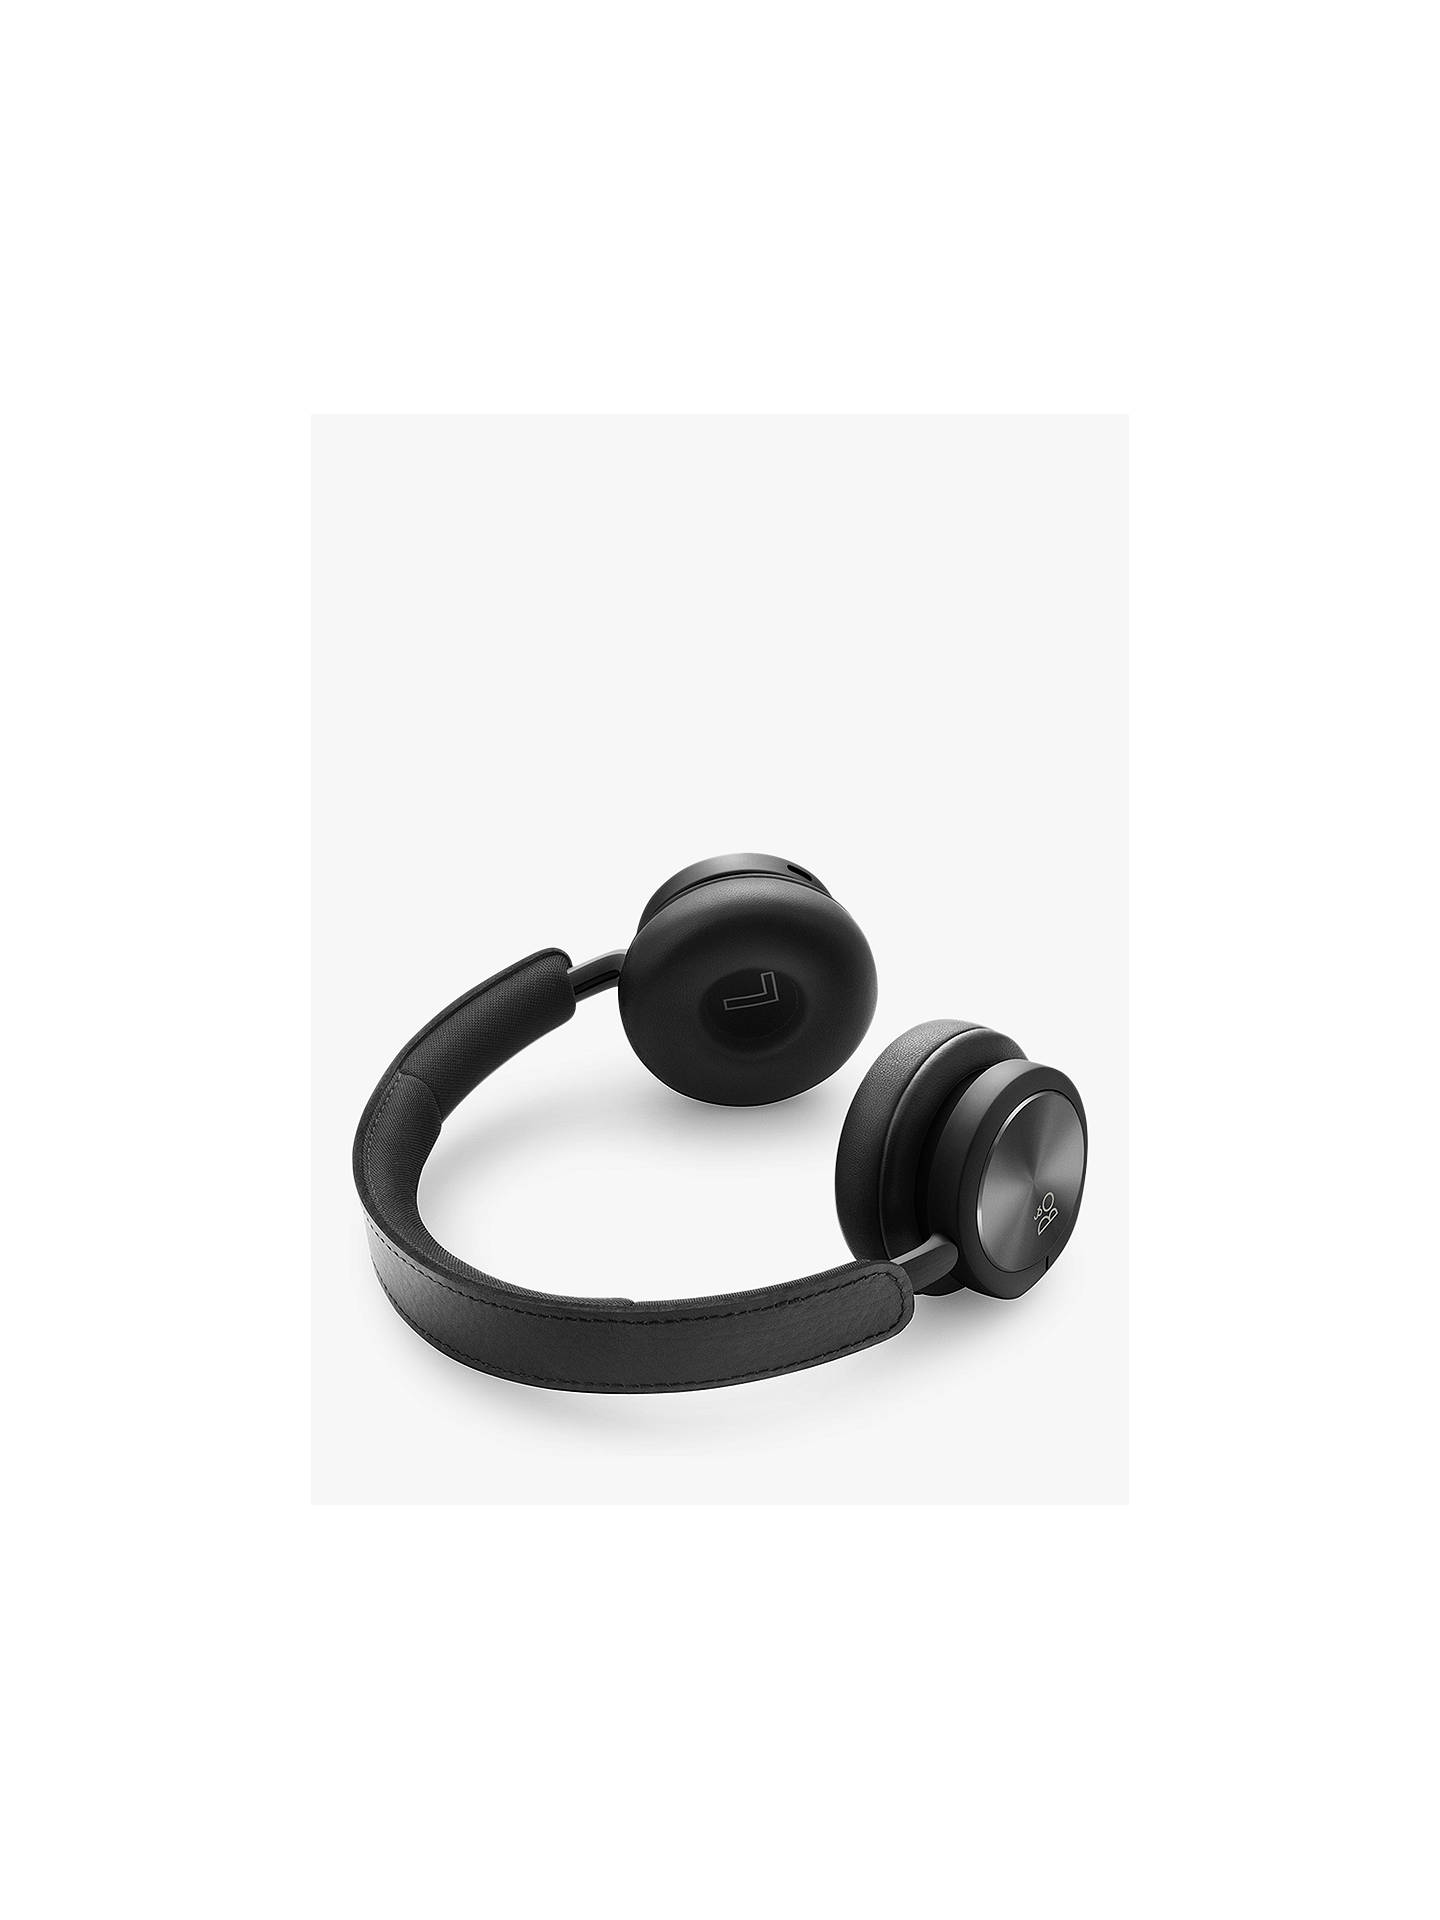 BuyB&O PLAY by Bang & Olufsen Beoplay H8i Wireless Bluetooth Active Noise Cancelling On-Ear Headphones with Transparency Mode, Black Online at johnlewis.com